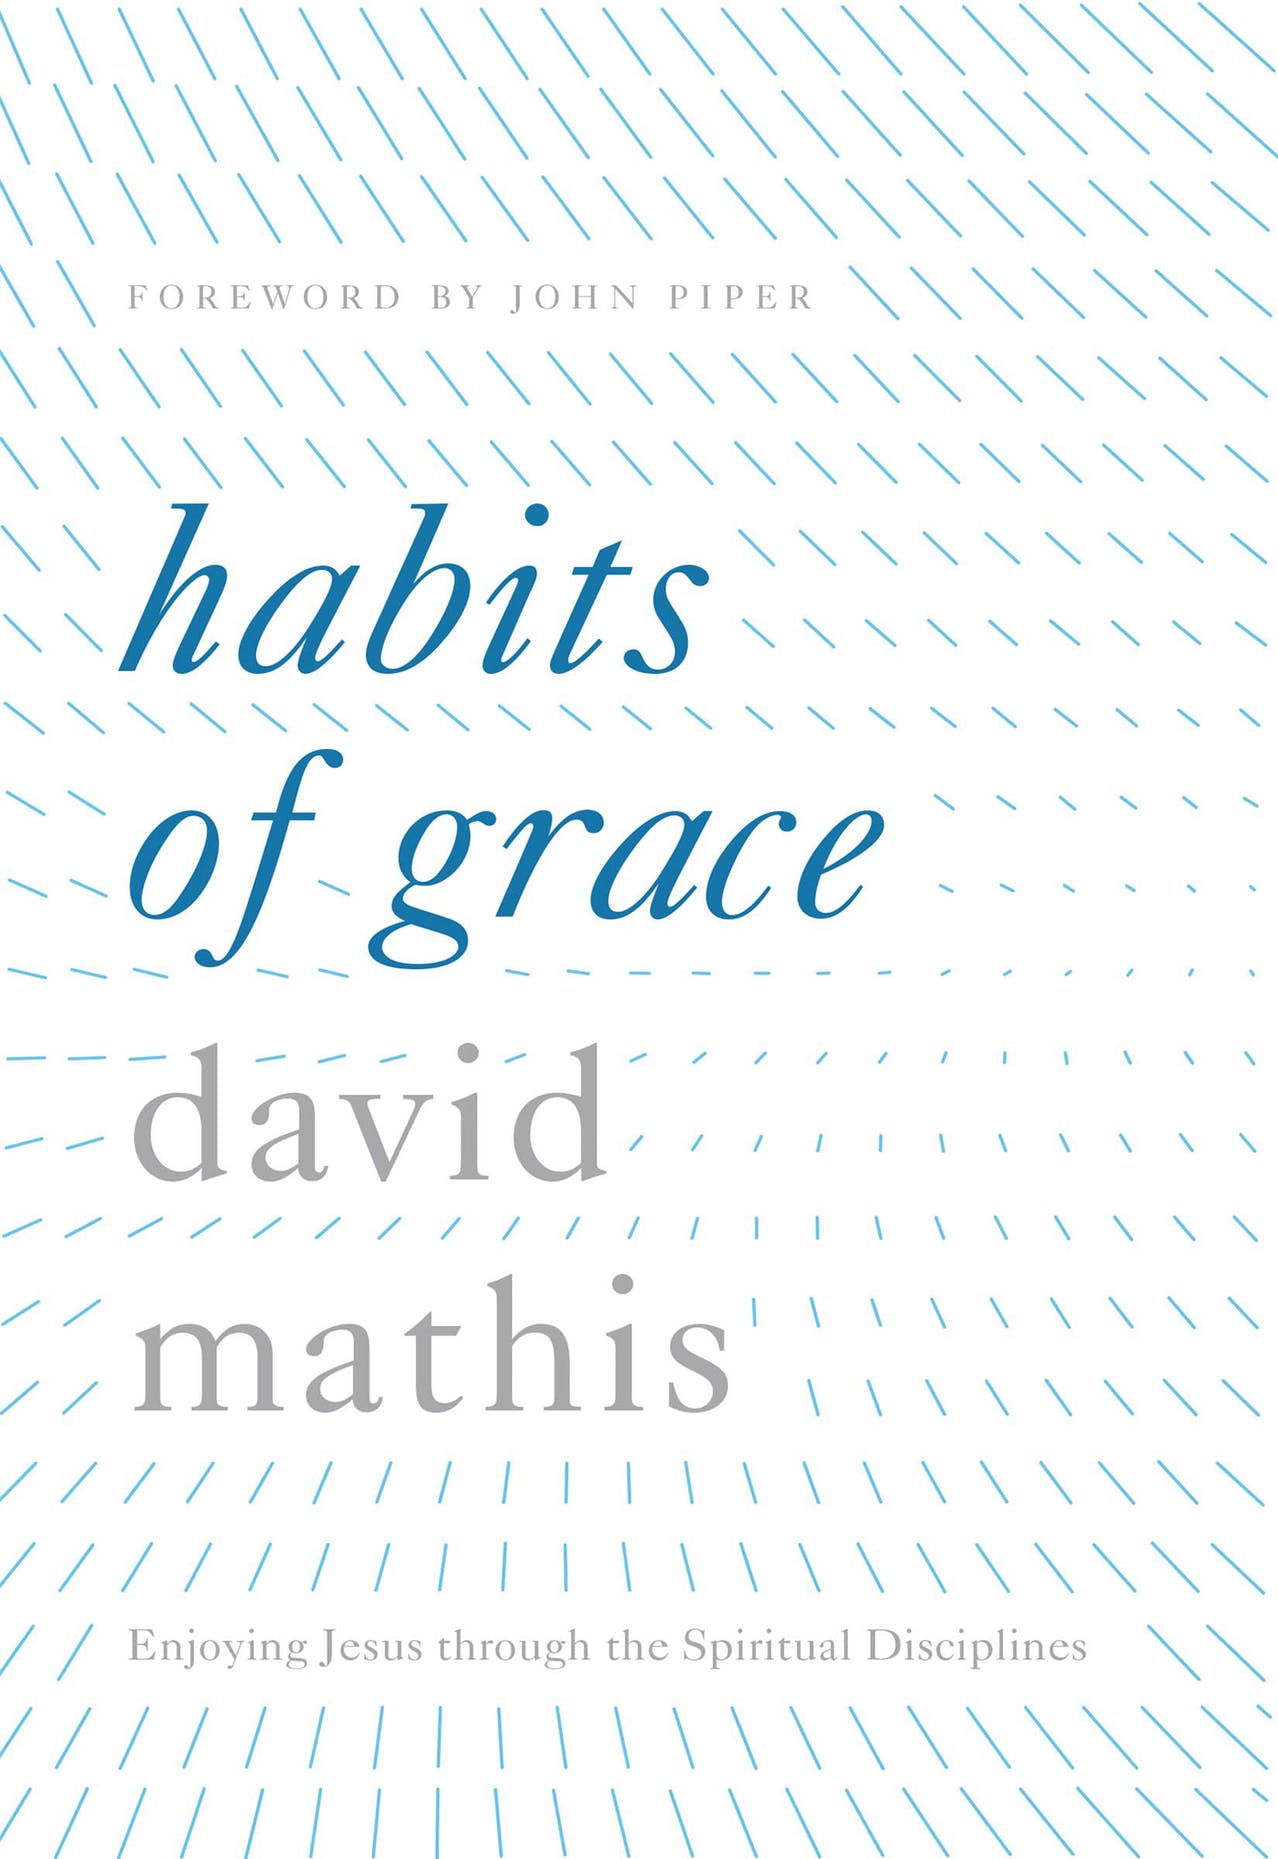 Acts Men Intensive - Acts Men is currently reading through Habits of Grace by David Mathis. We are learning how the spiritual disciplines can lead us into greater joy in Christ. Please join us! We meet every other Saturday beginning January 5th at 7:30-9am.